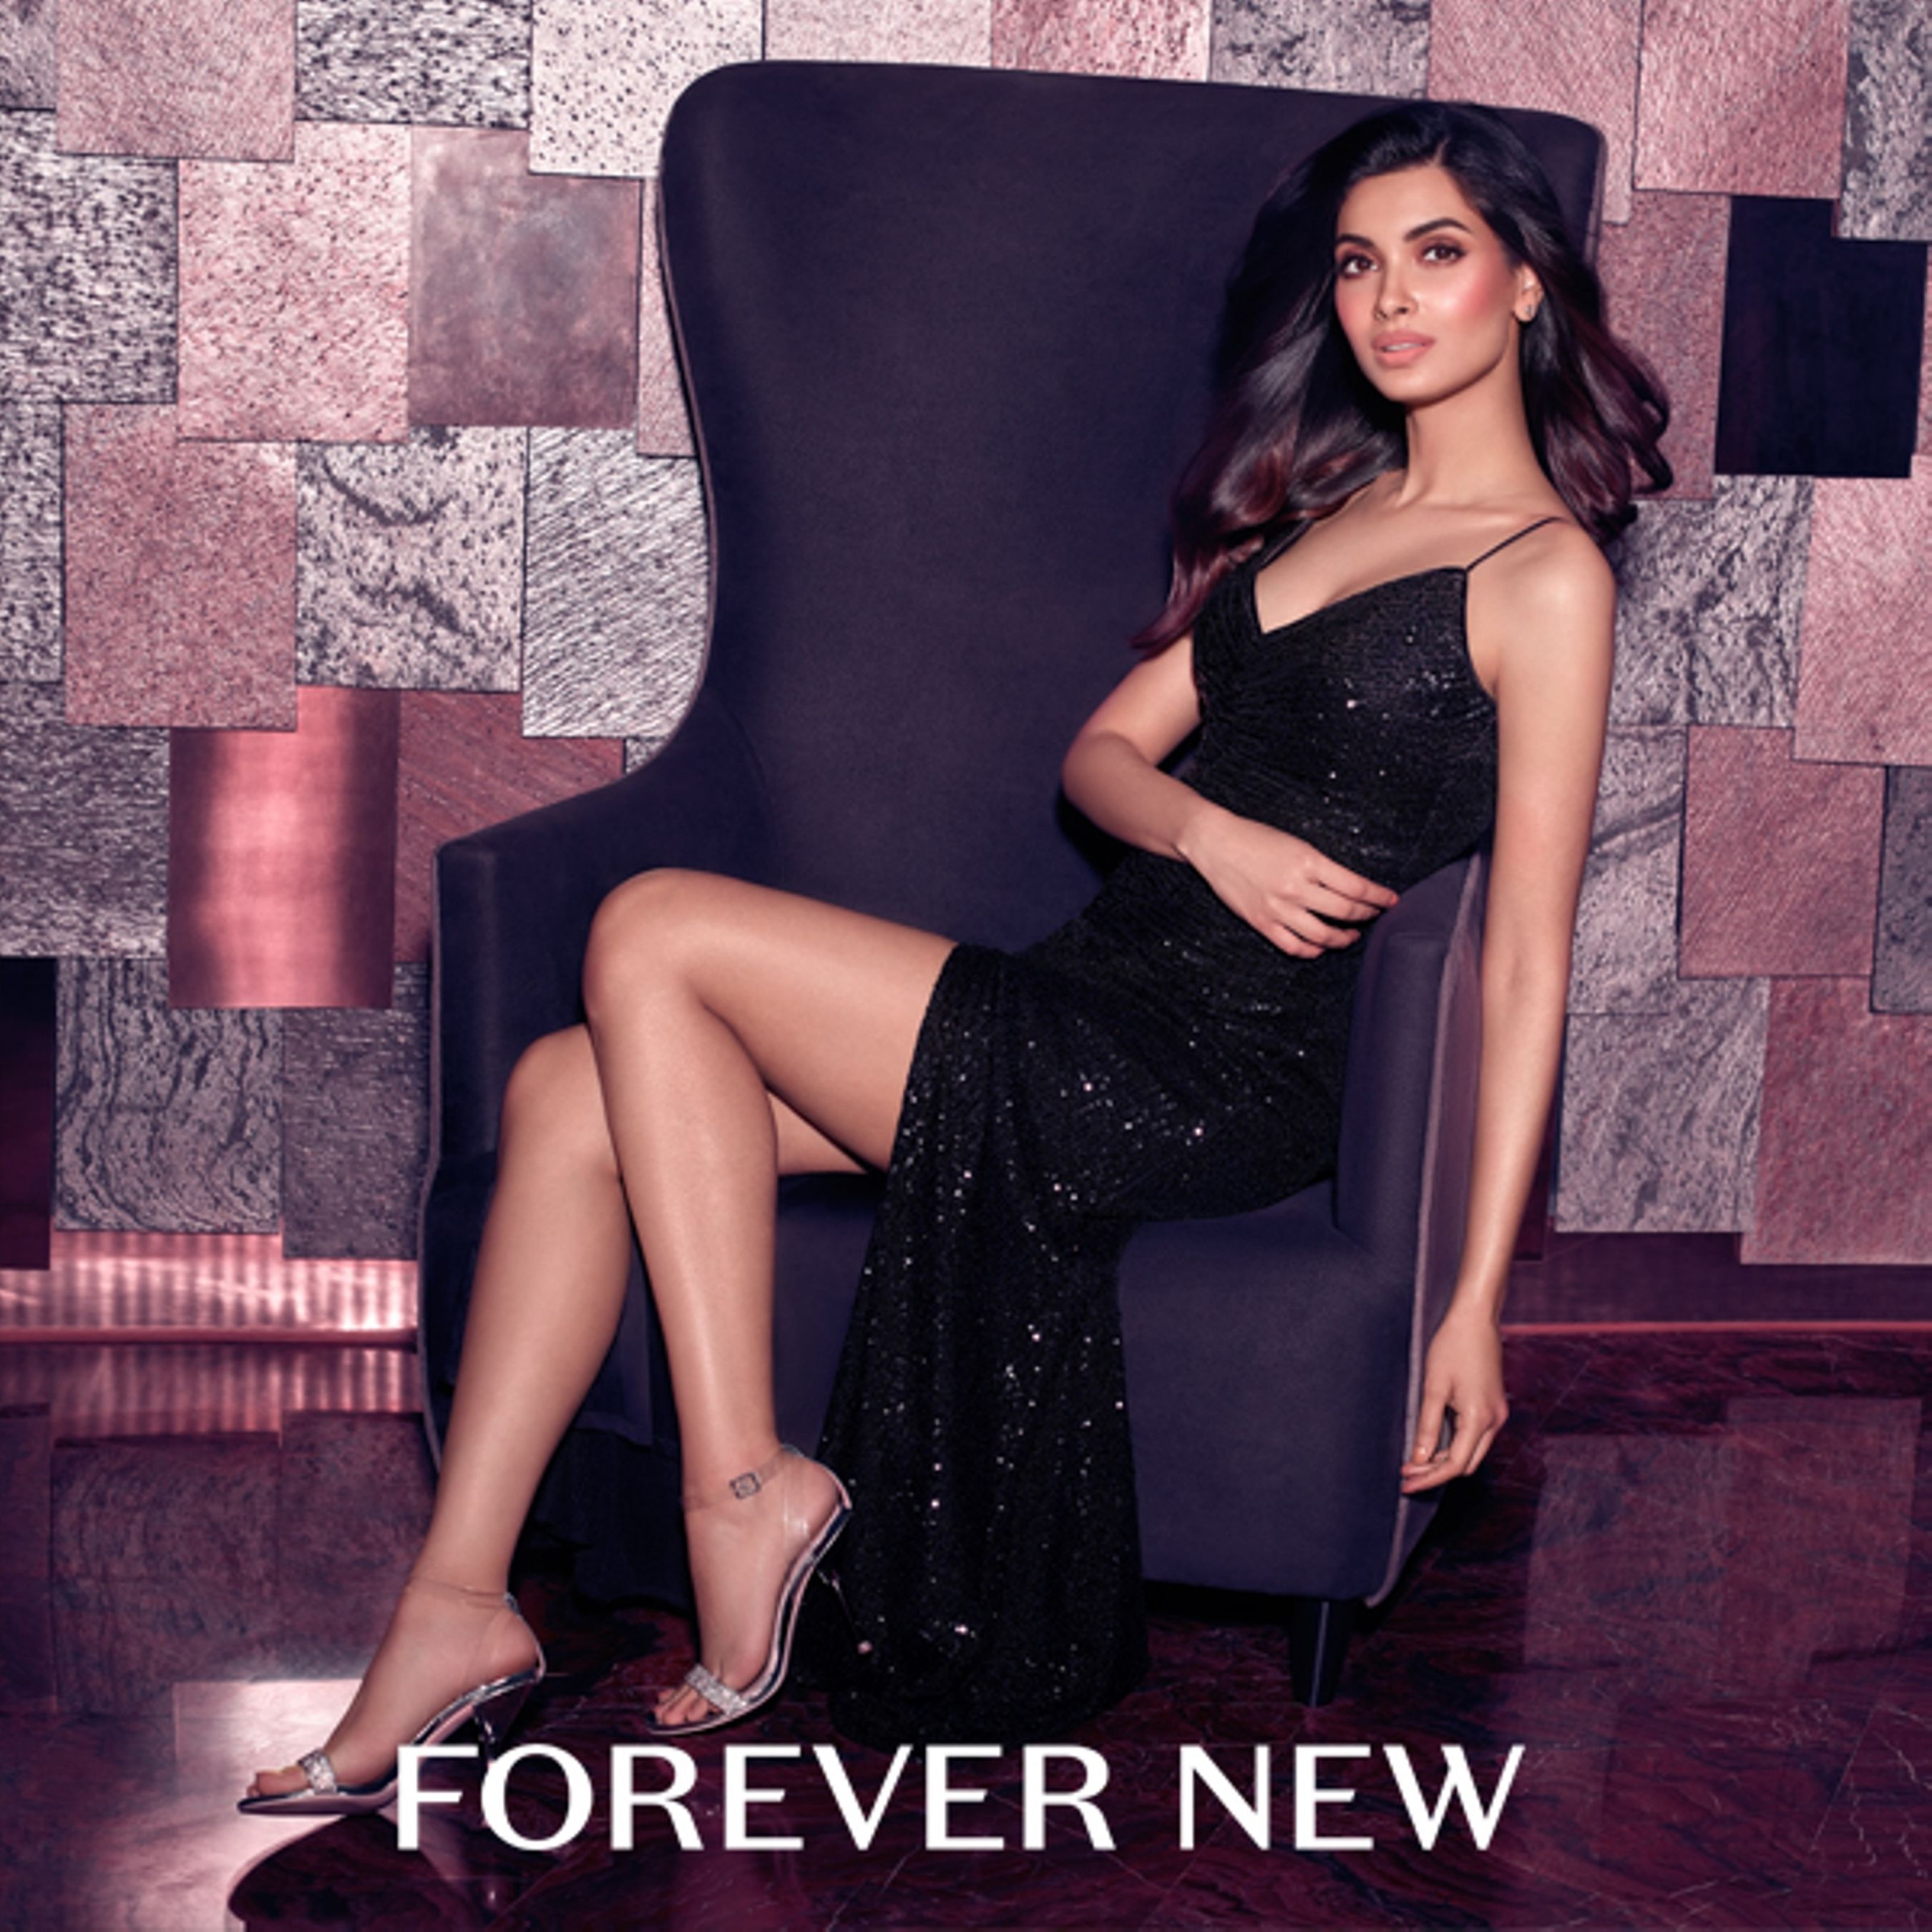 Diana Penty lets us in on her personal style and fashion inspiration